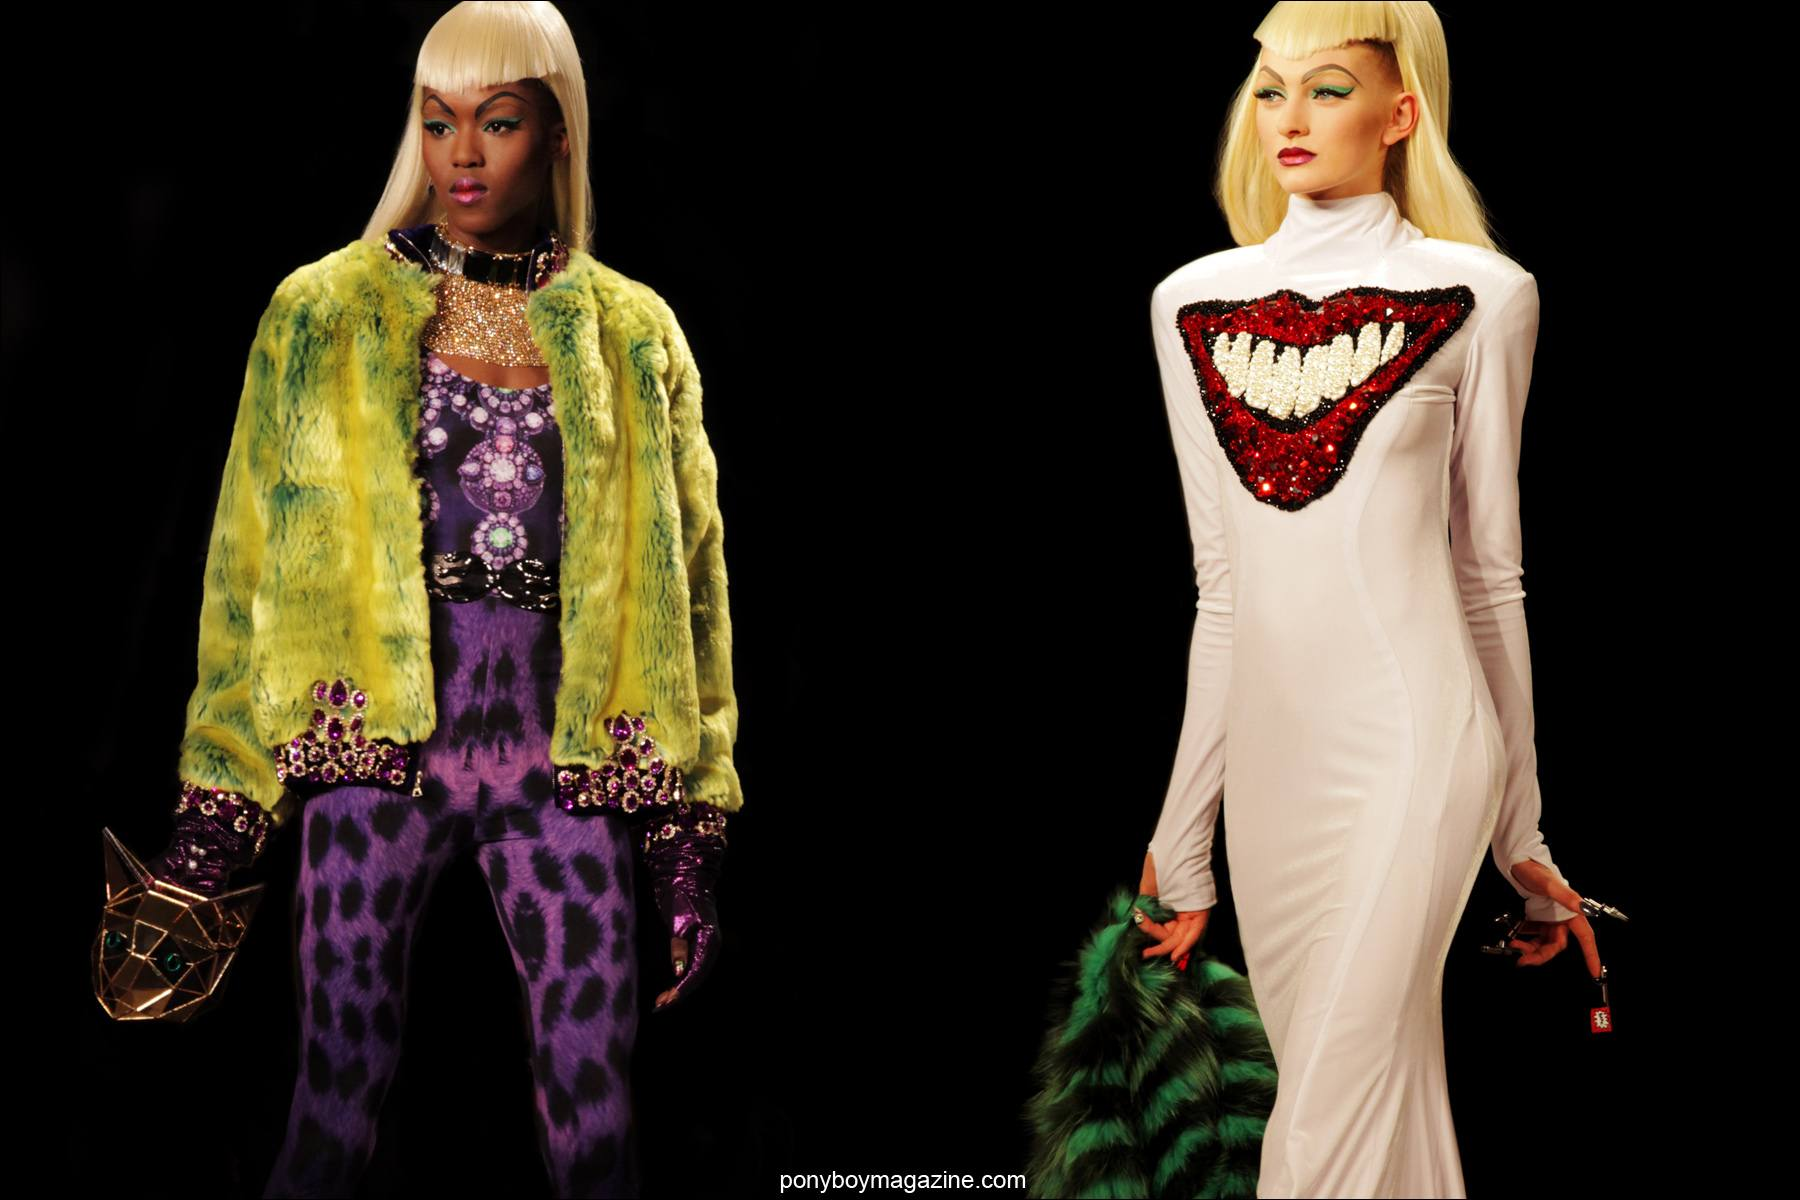 The Blonds A/W 2014 runway collection photographed by Alexander Thompson during NYFW for Ponyboy Magazine.